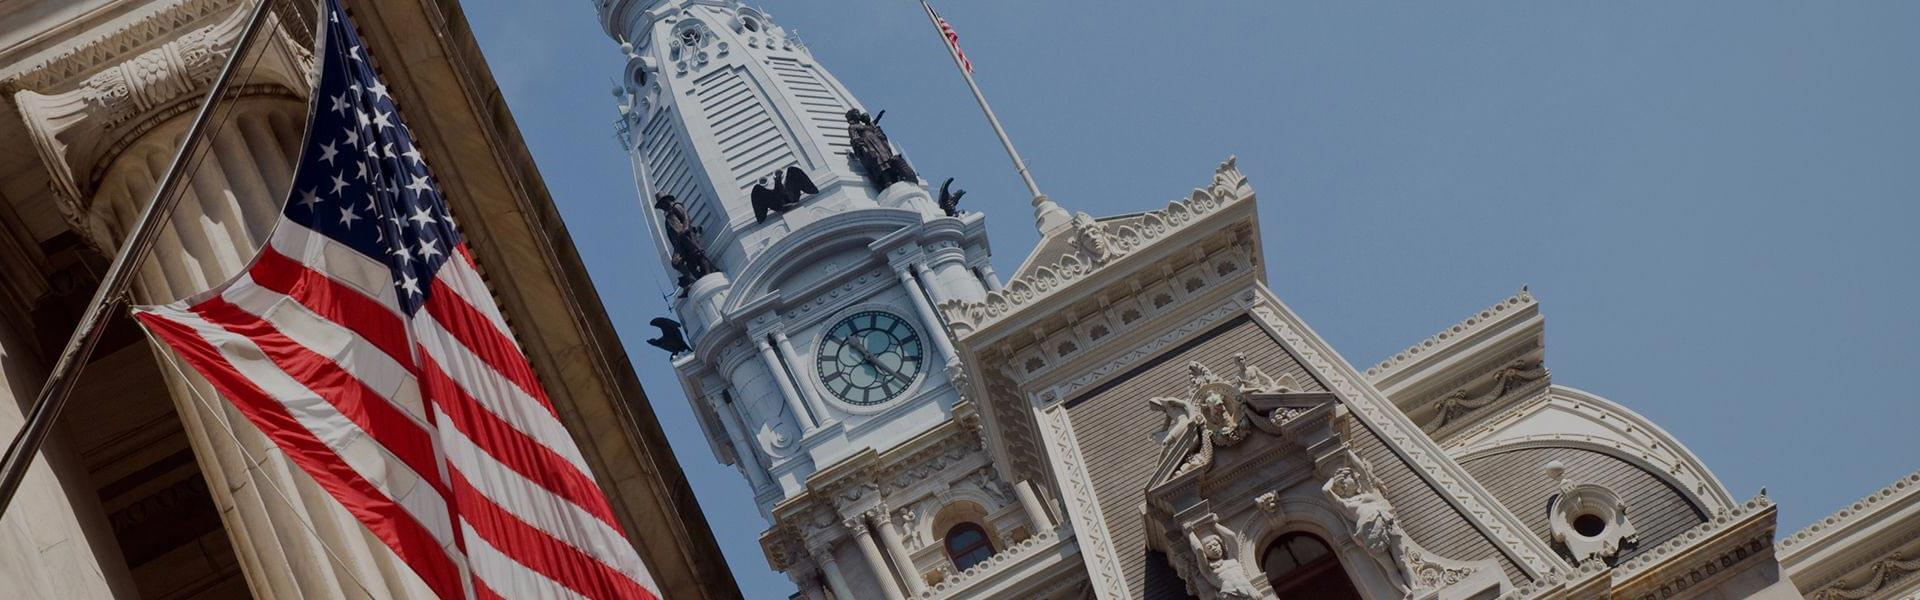 City Hall with American flag in Philadelphia